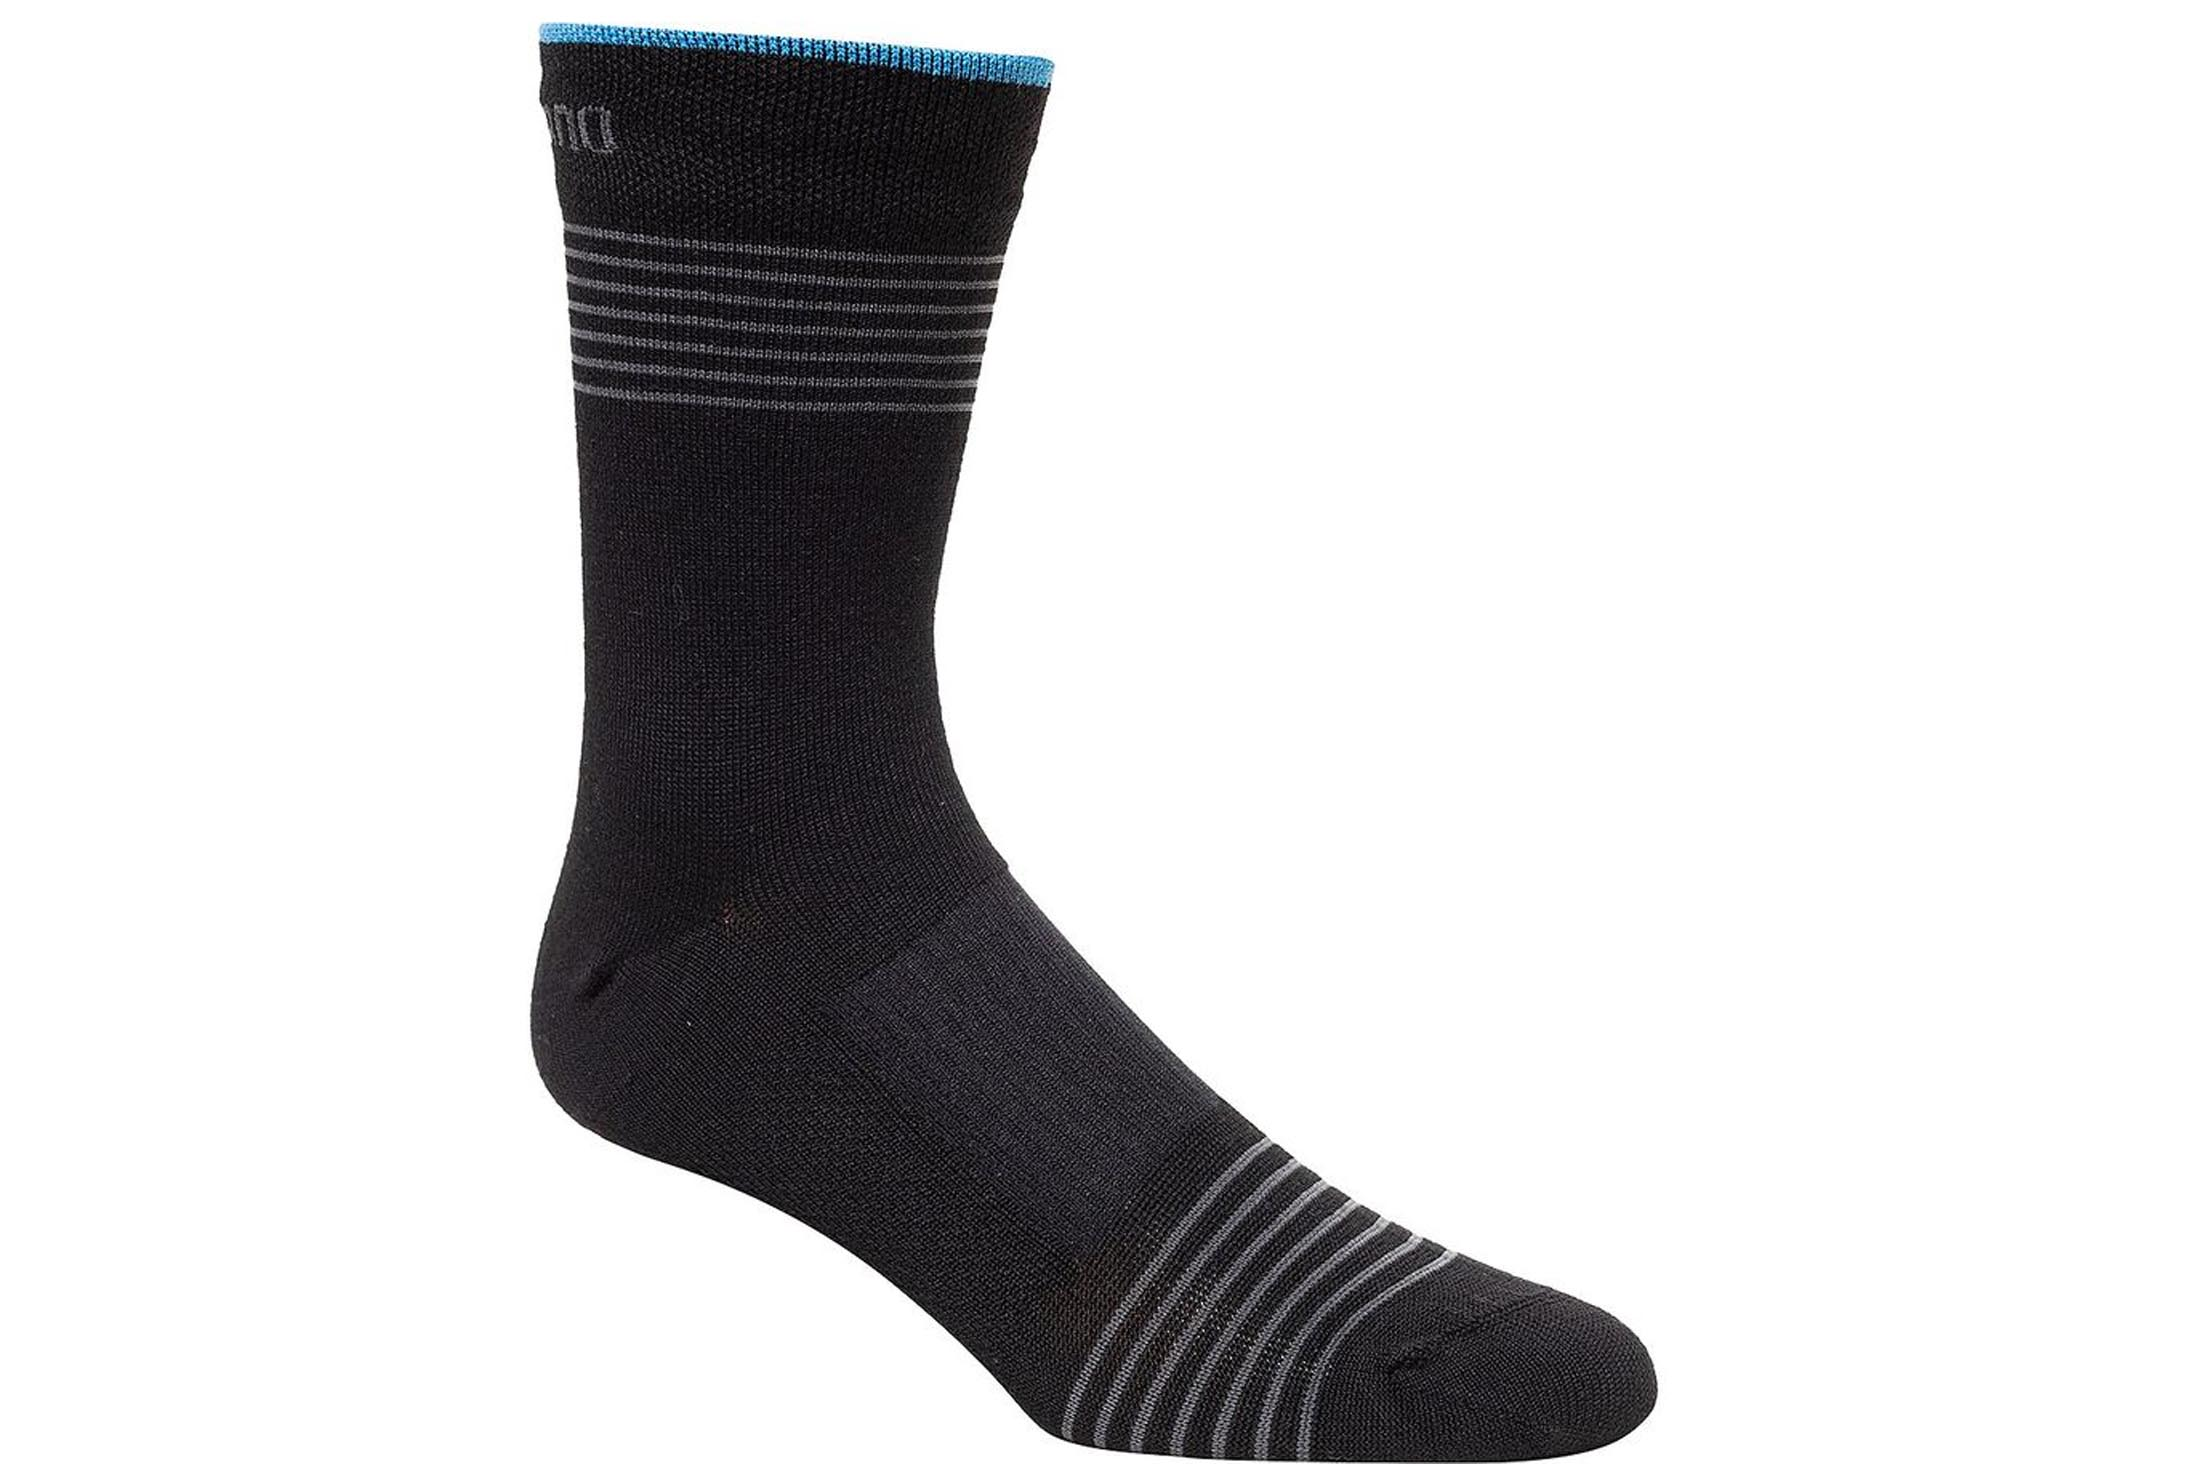 another sock